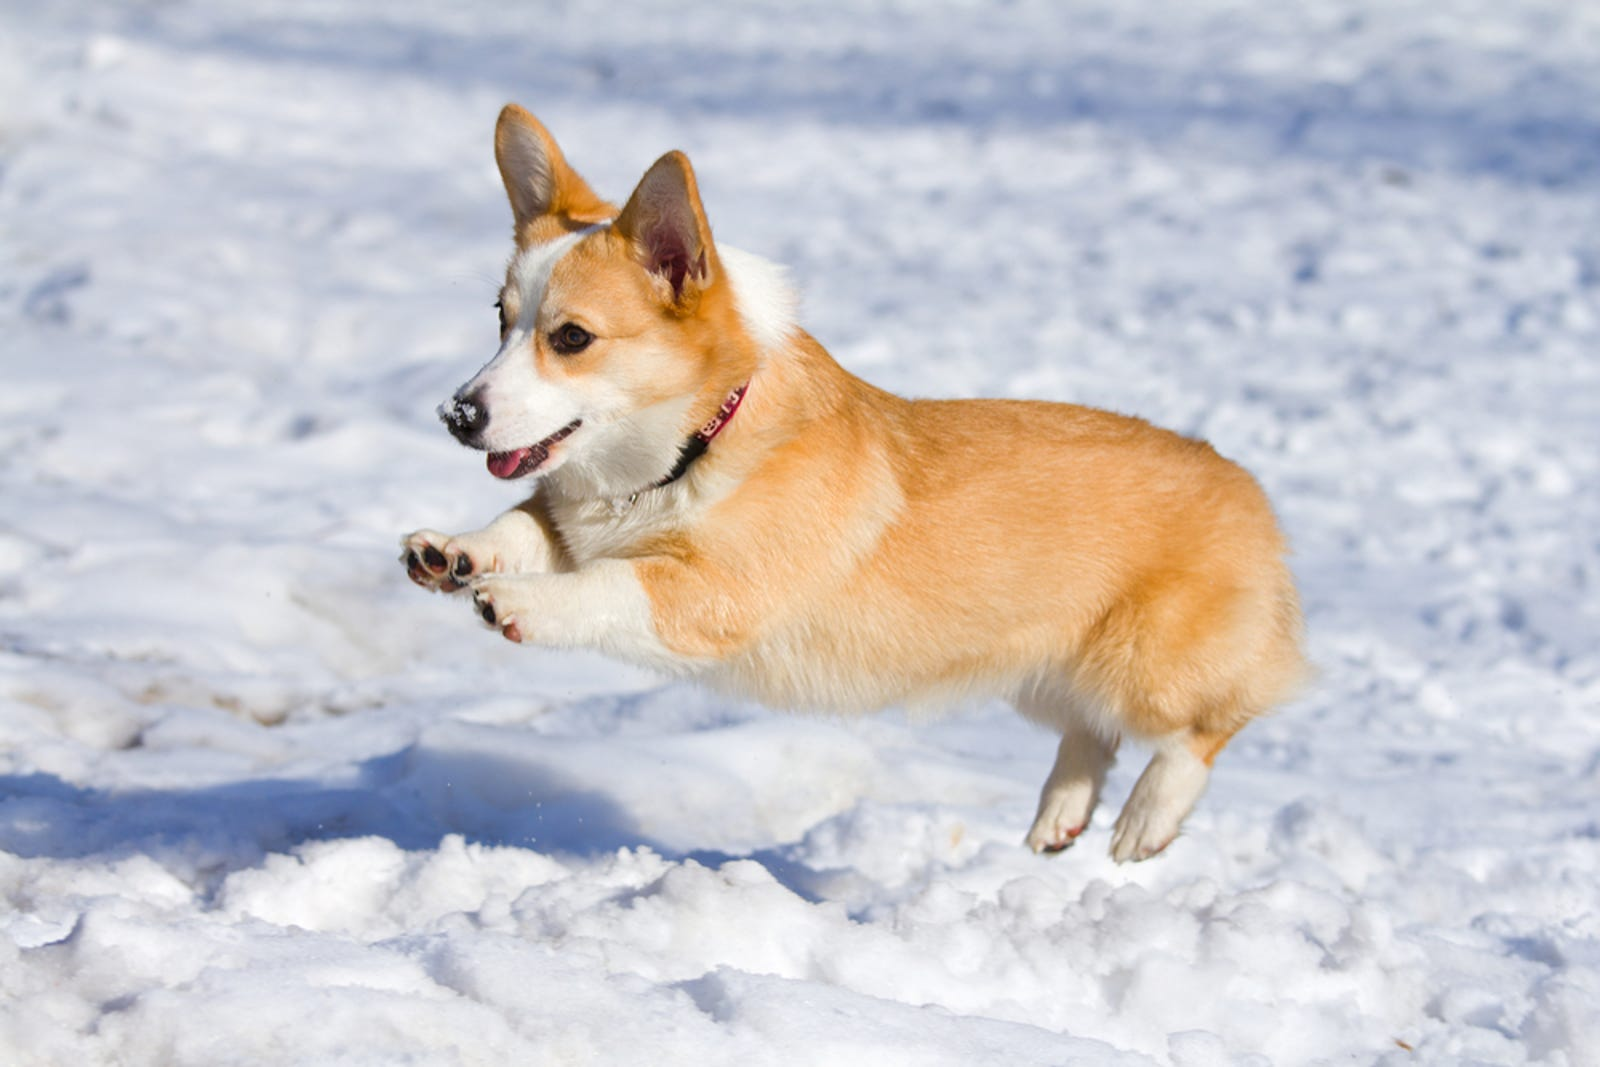 """Corgi in the snow"" Snow Frolics Don't let corgis play in the cold weather check out more good content here"